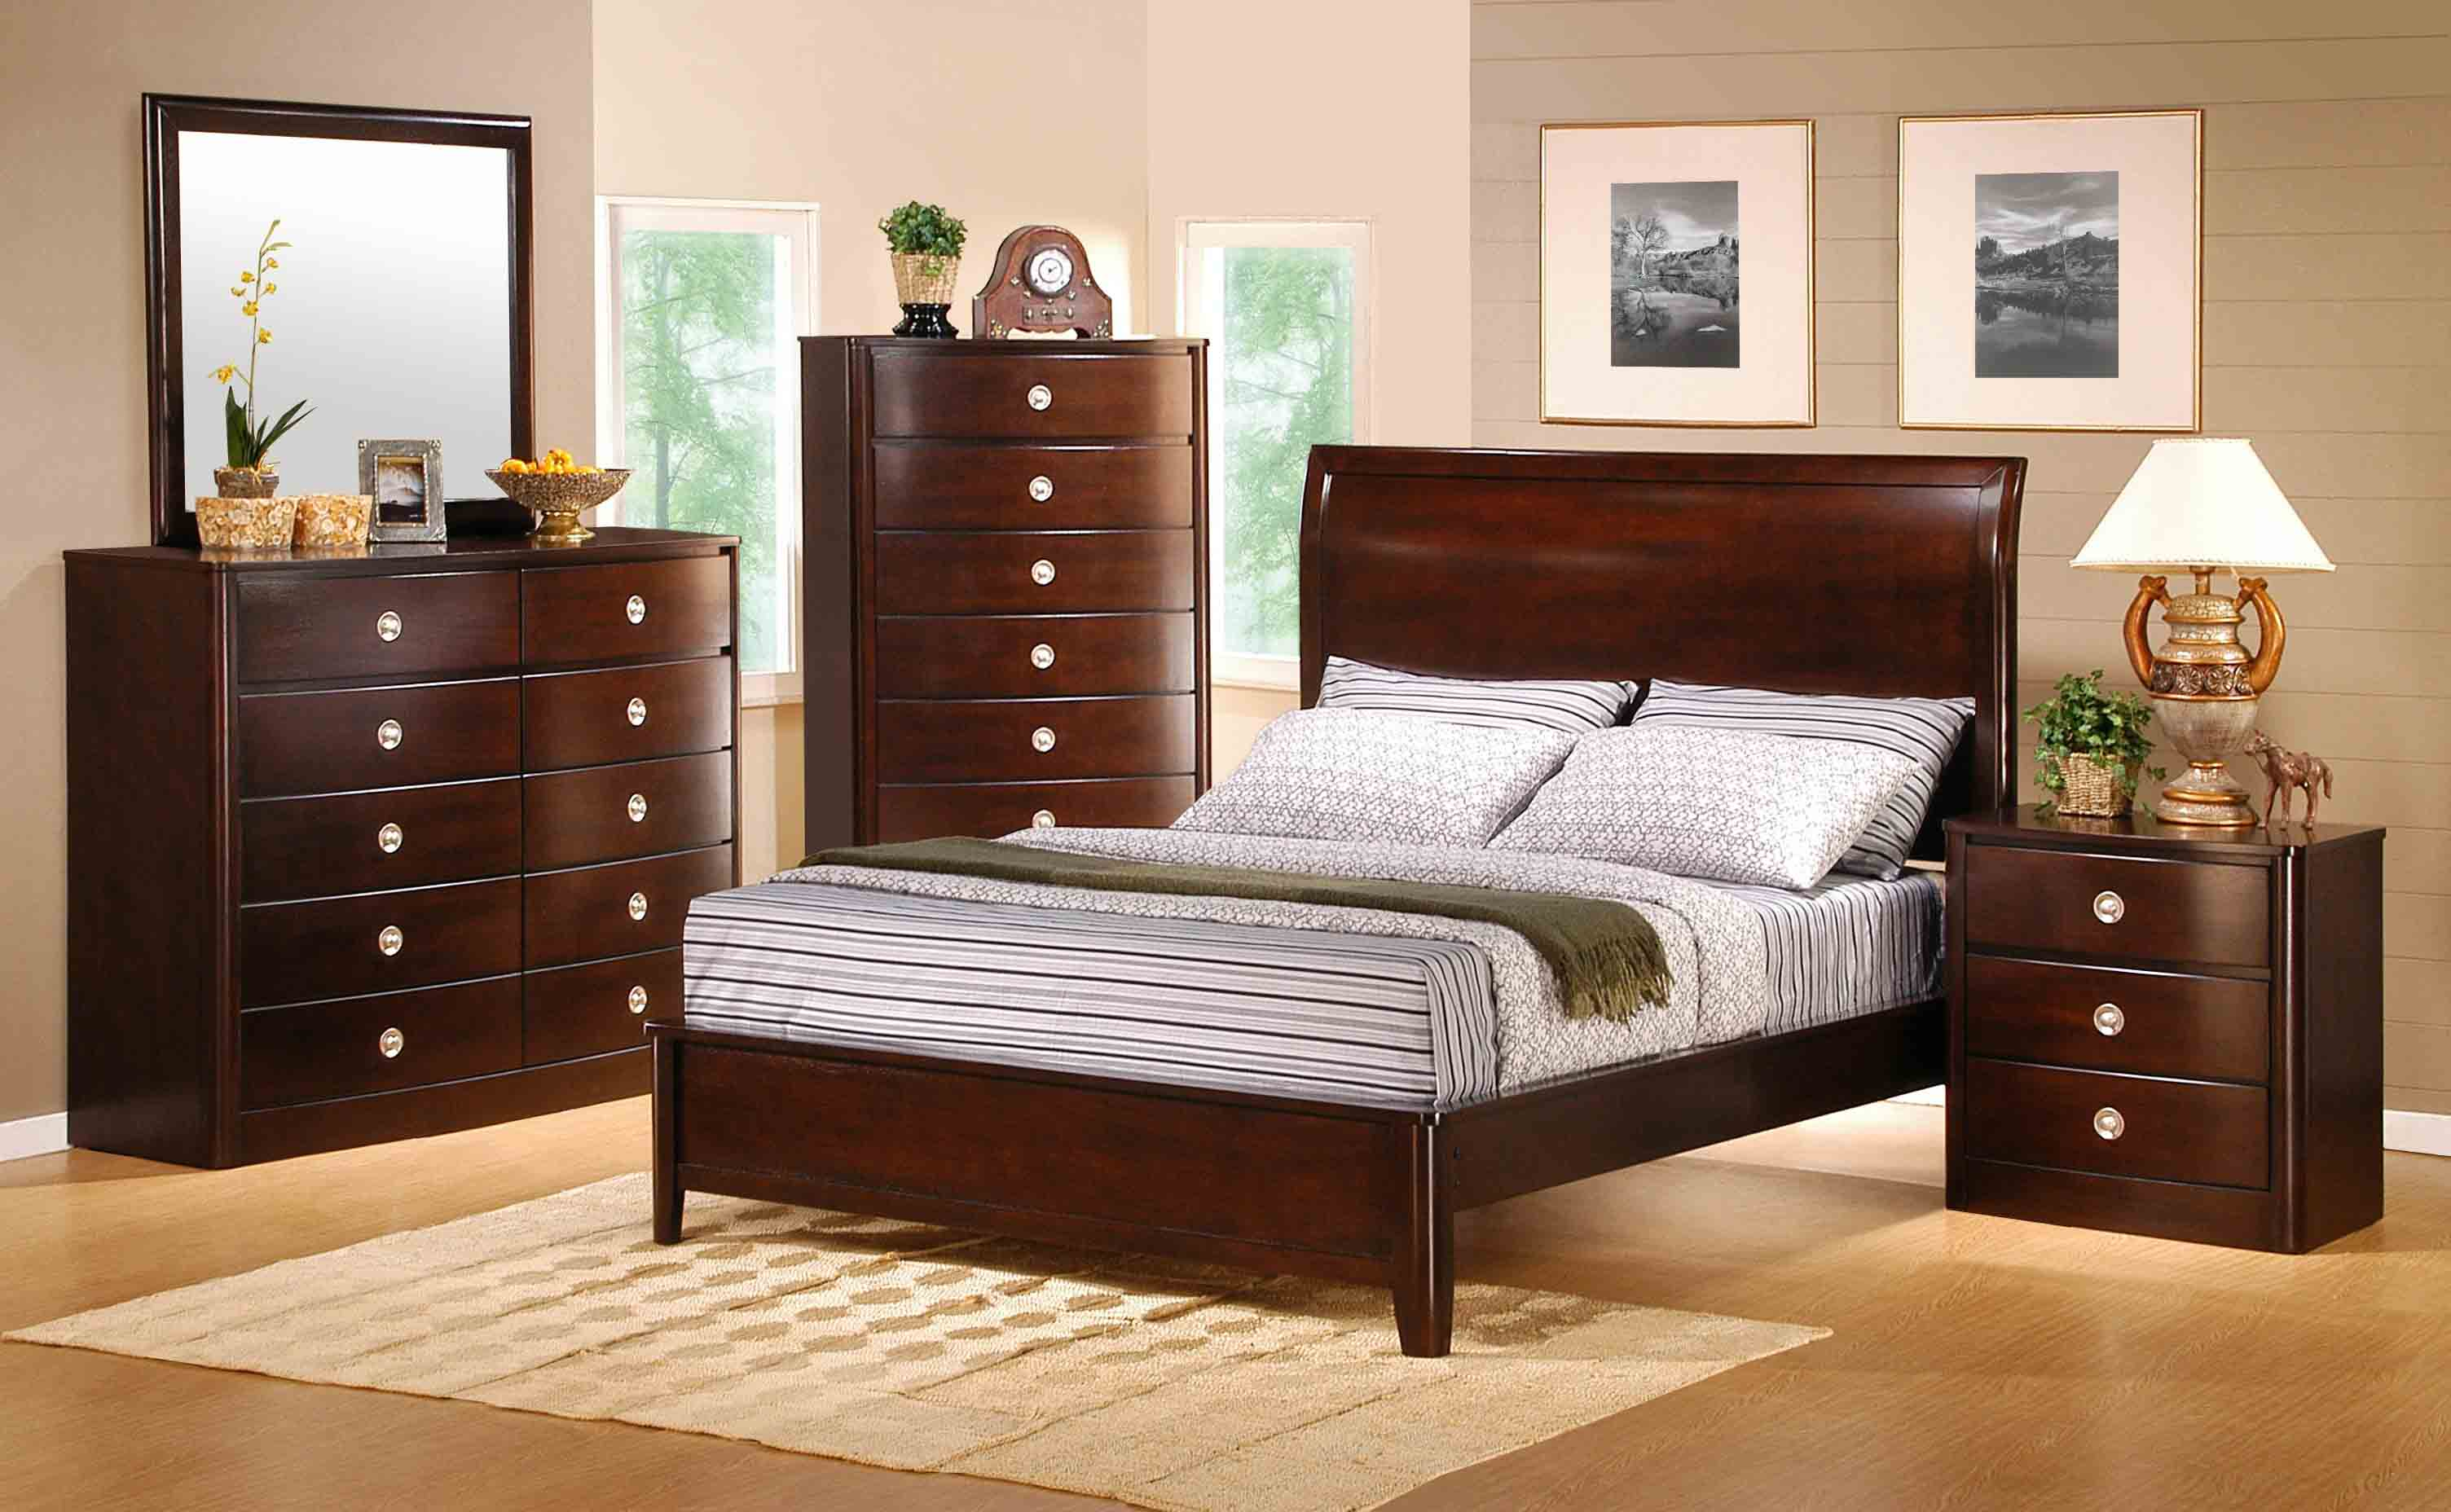 Freya Classic Cherry Finish wood Bedroom Set  Queen Bed  Dresser  Mirror  2 Night  Stands. Roundhill Furniture